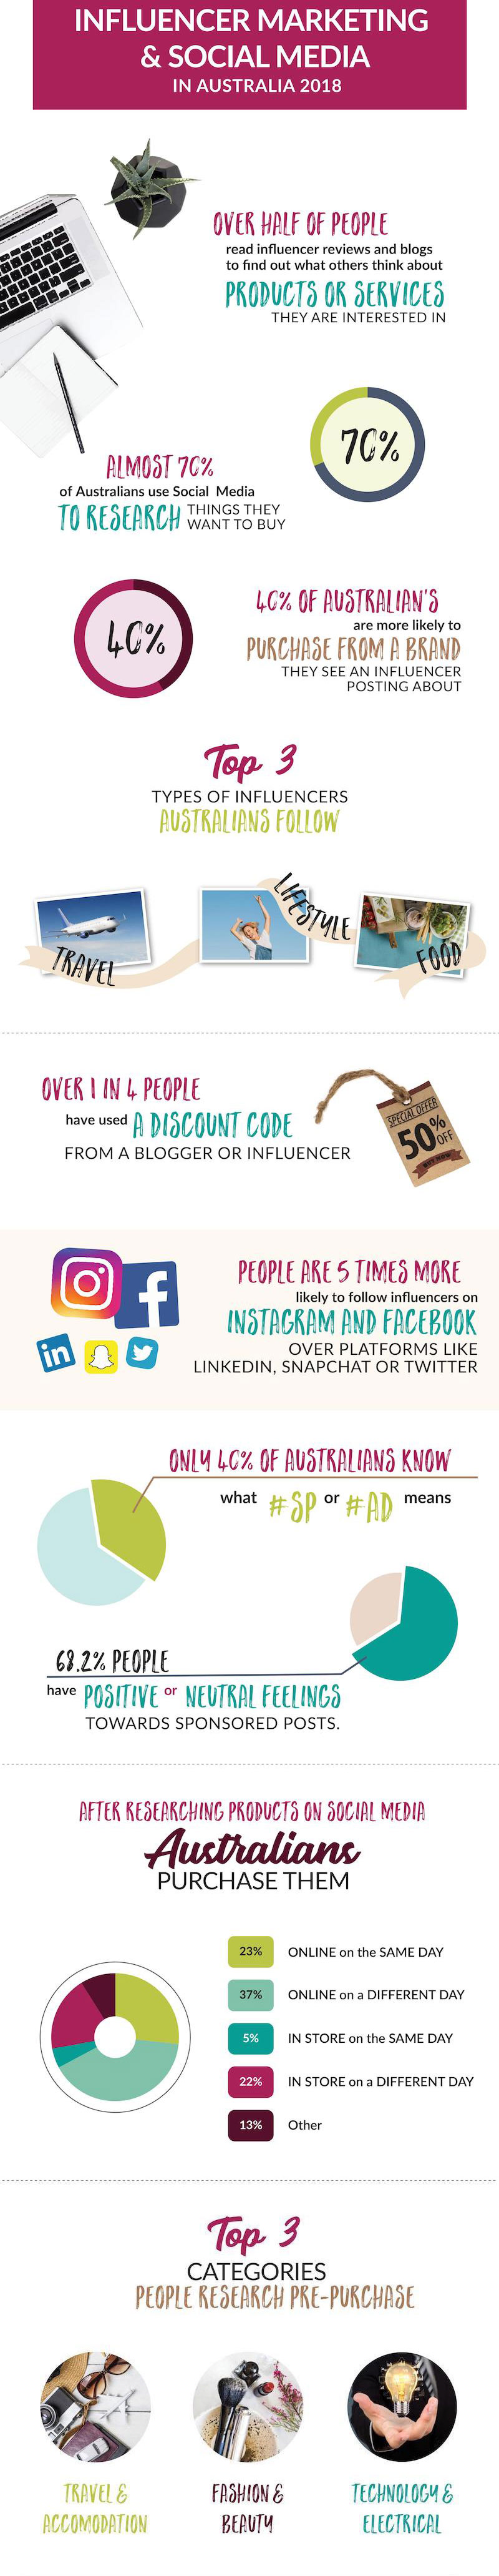 Influencer Marketing & Social Media in Australia